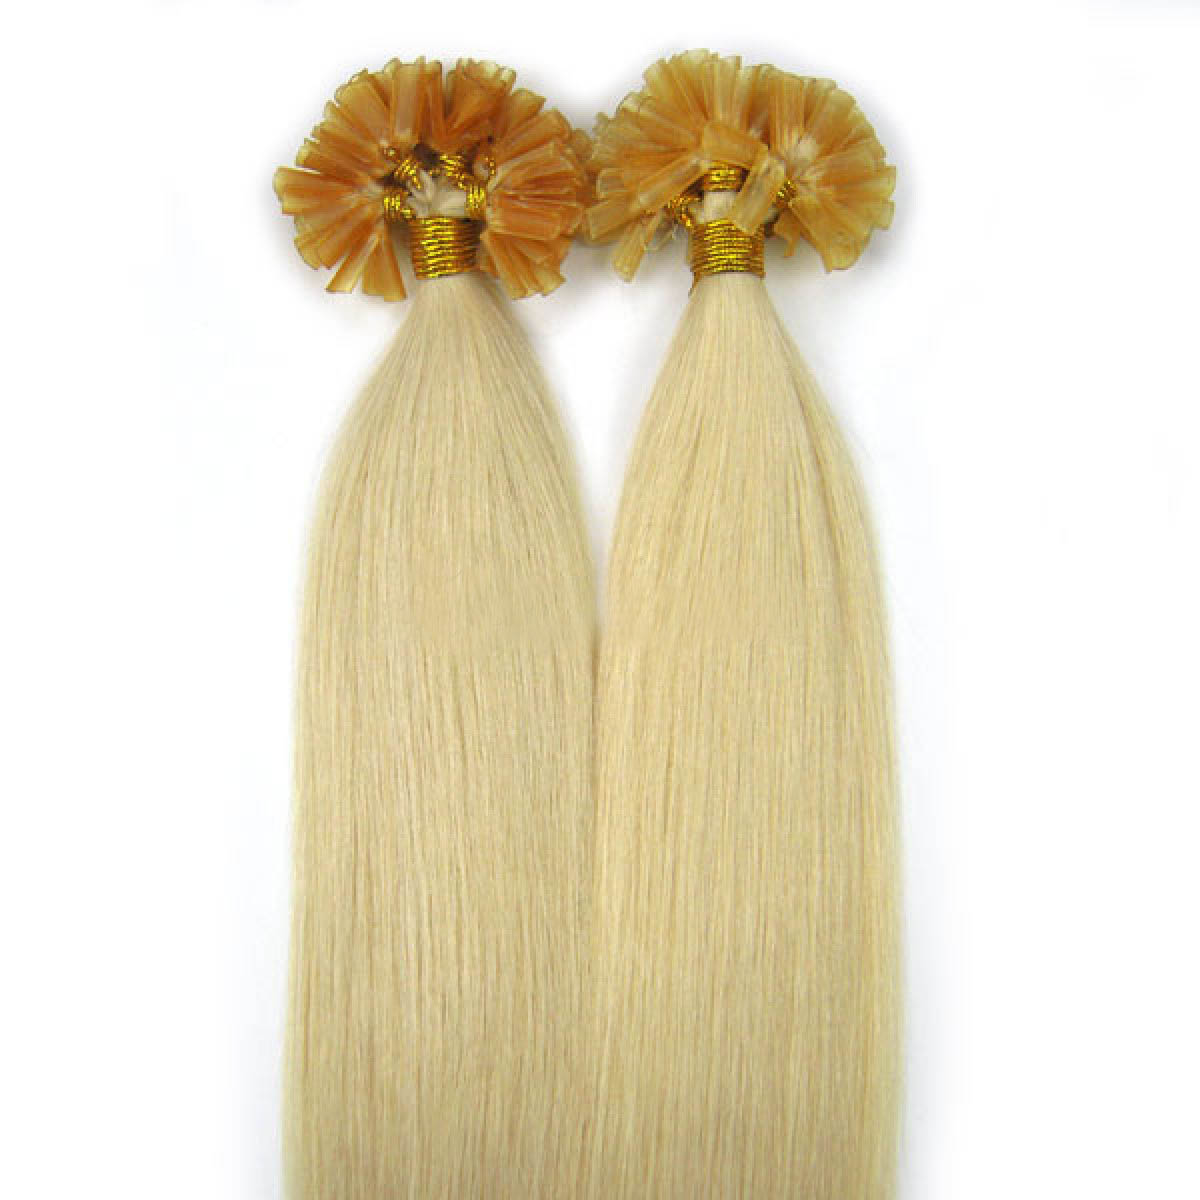 22 Inch #60 White Blonde Nail Tip Human Hair Extensions 100S no 2